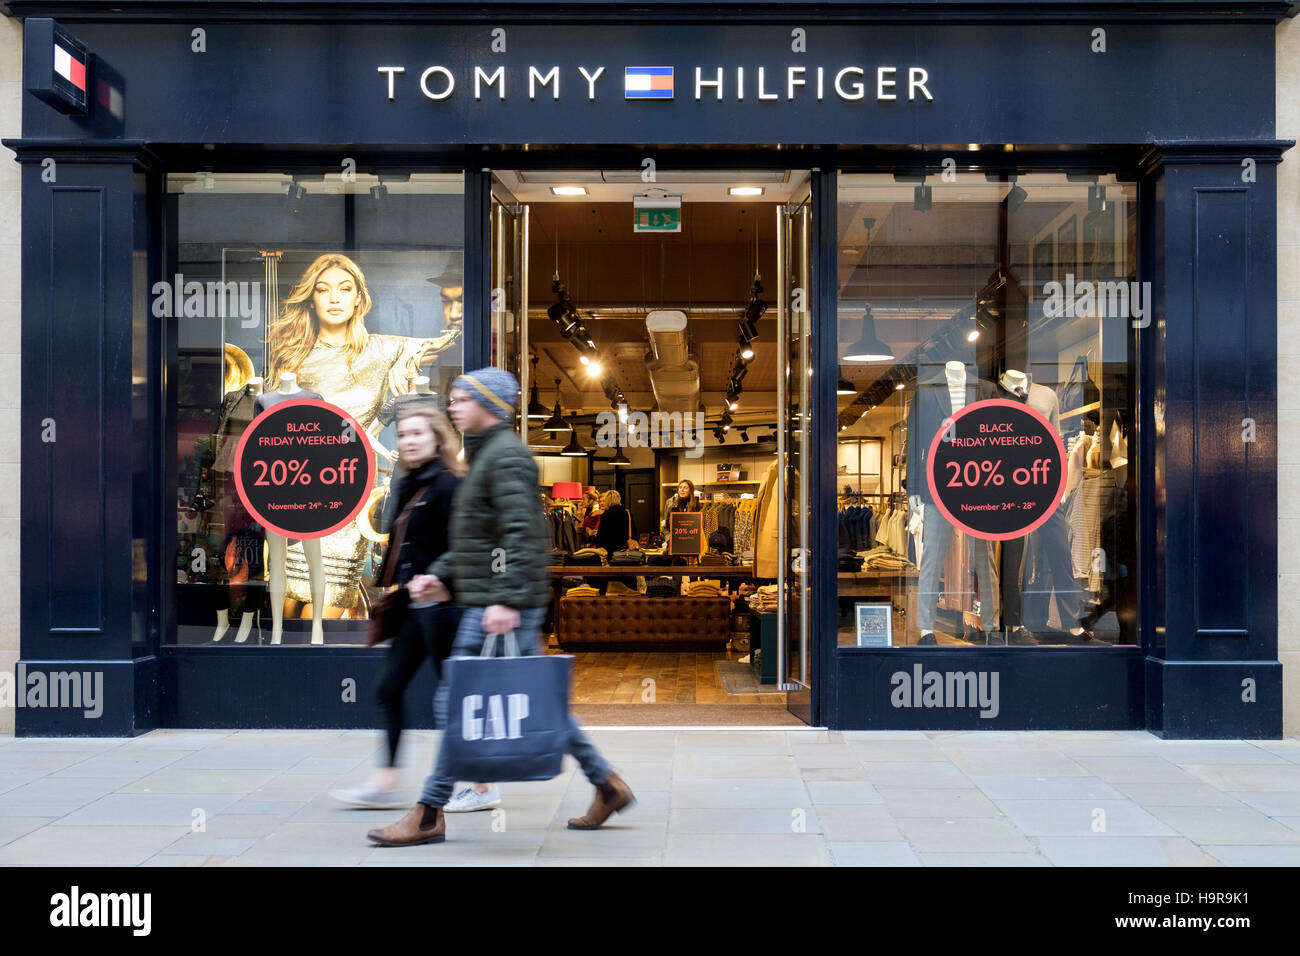 32b55d9b With Black Friday sales due to start on Friday, shoppers are pictured as  they walk past a Tommy Hilfiger store in the centre of Bath,UK.